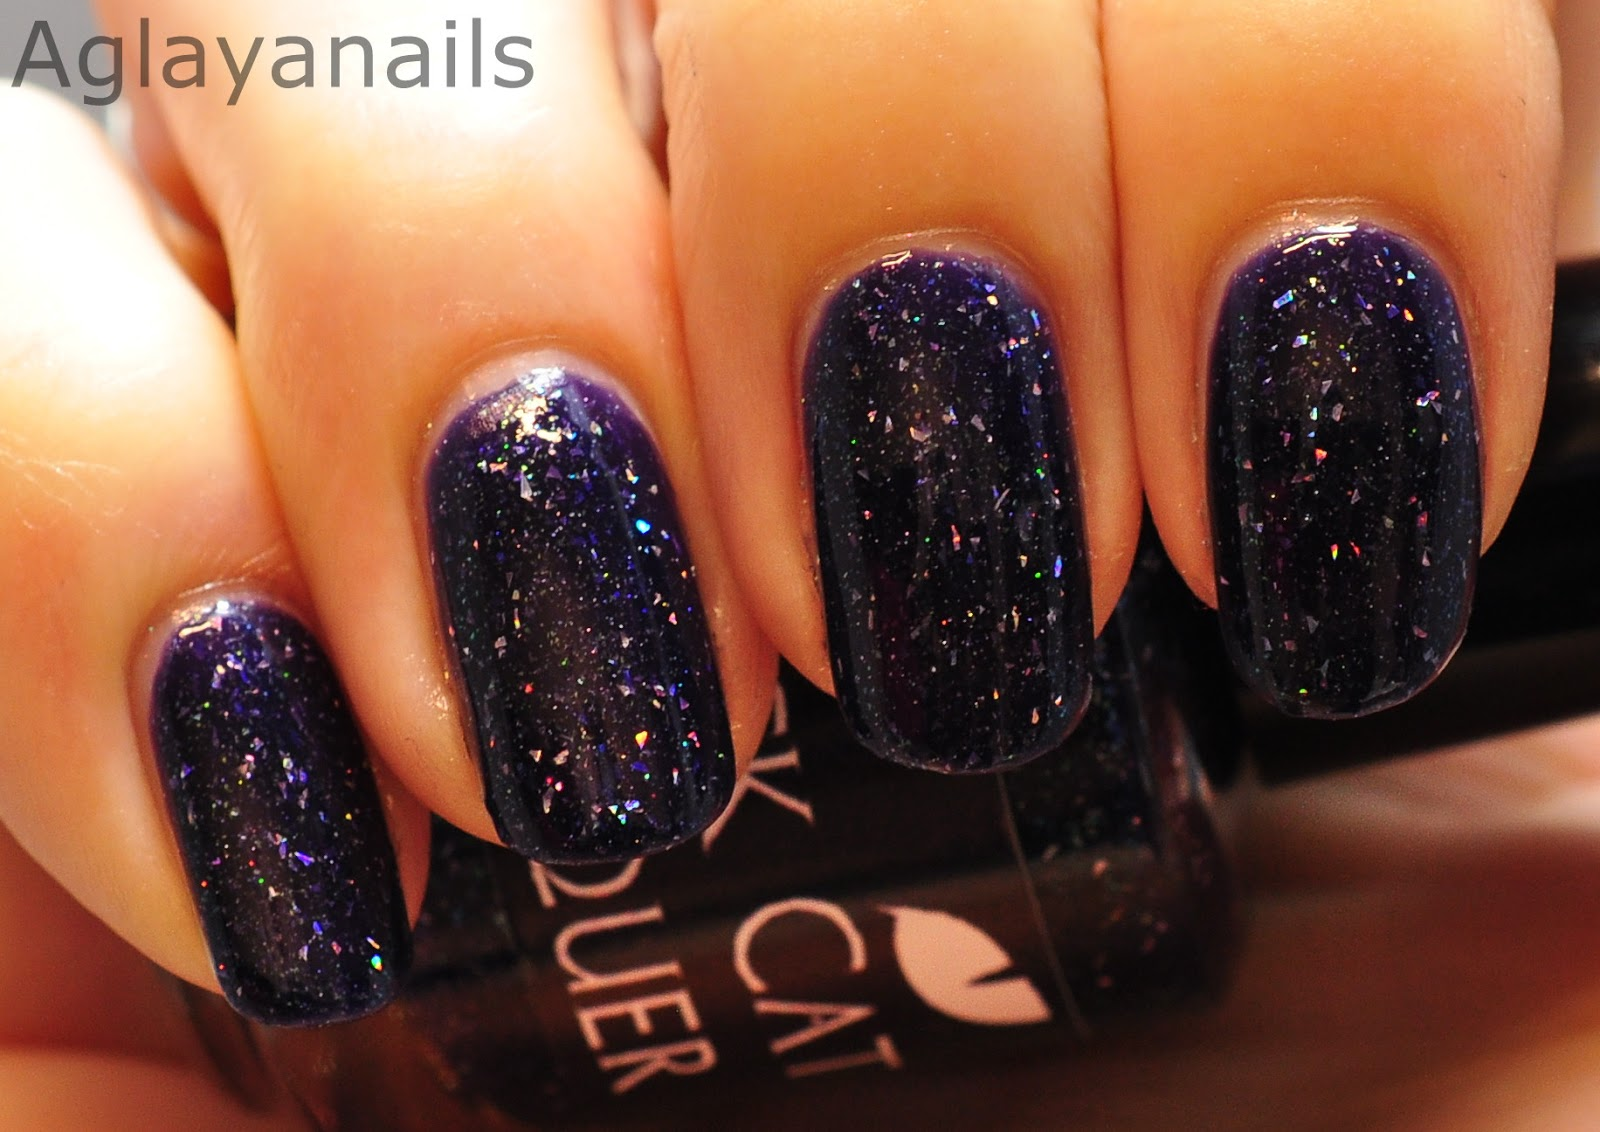 Aglayanails: A Box, Indied - Under The Night Sky